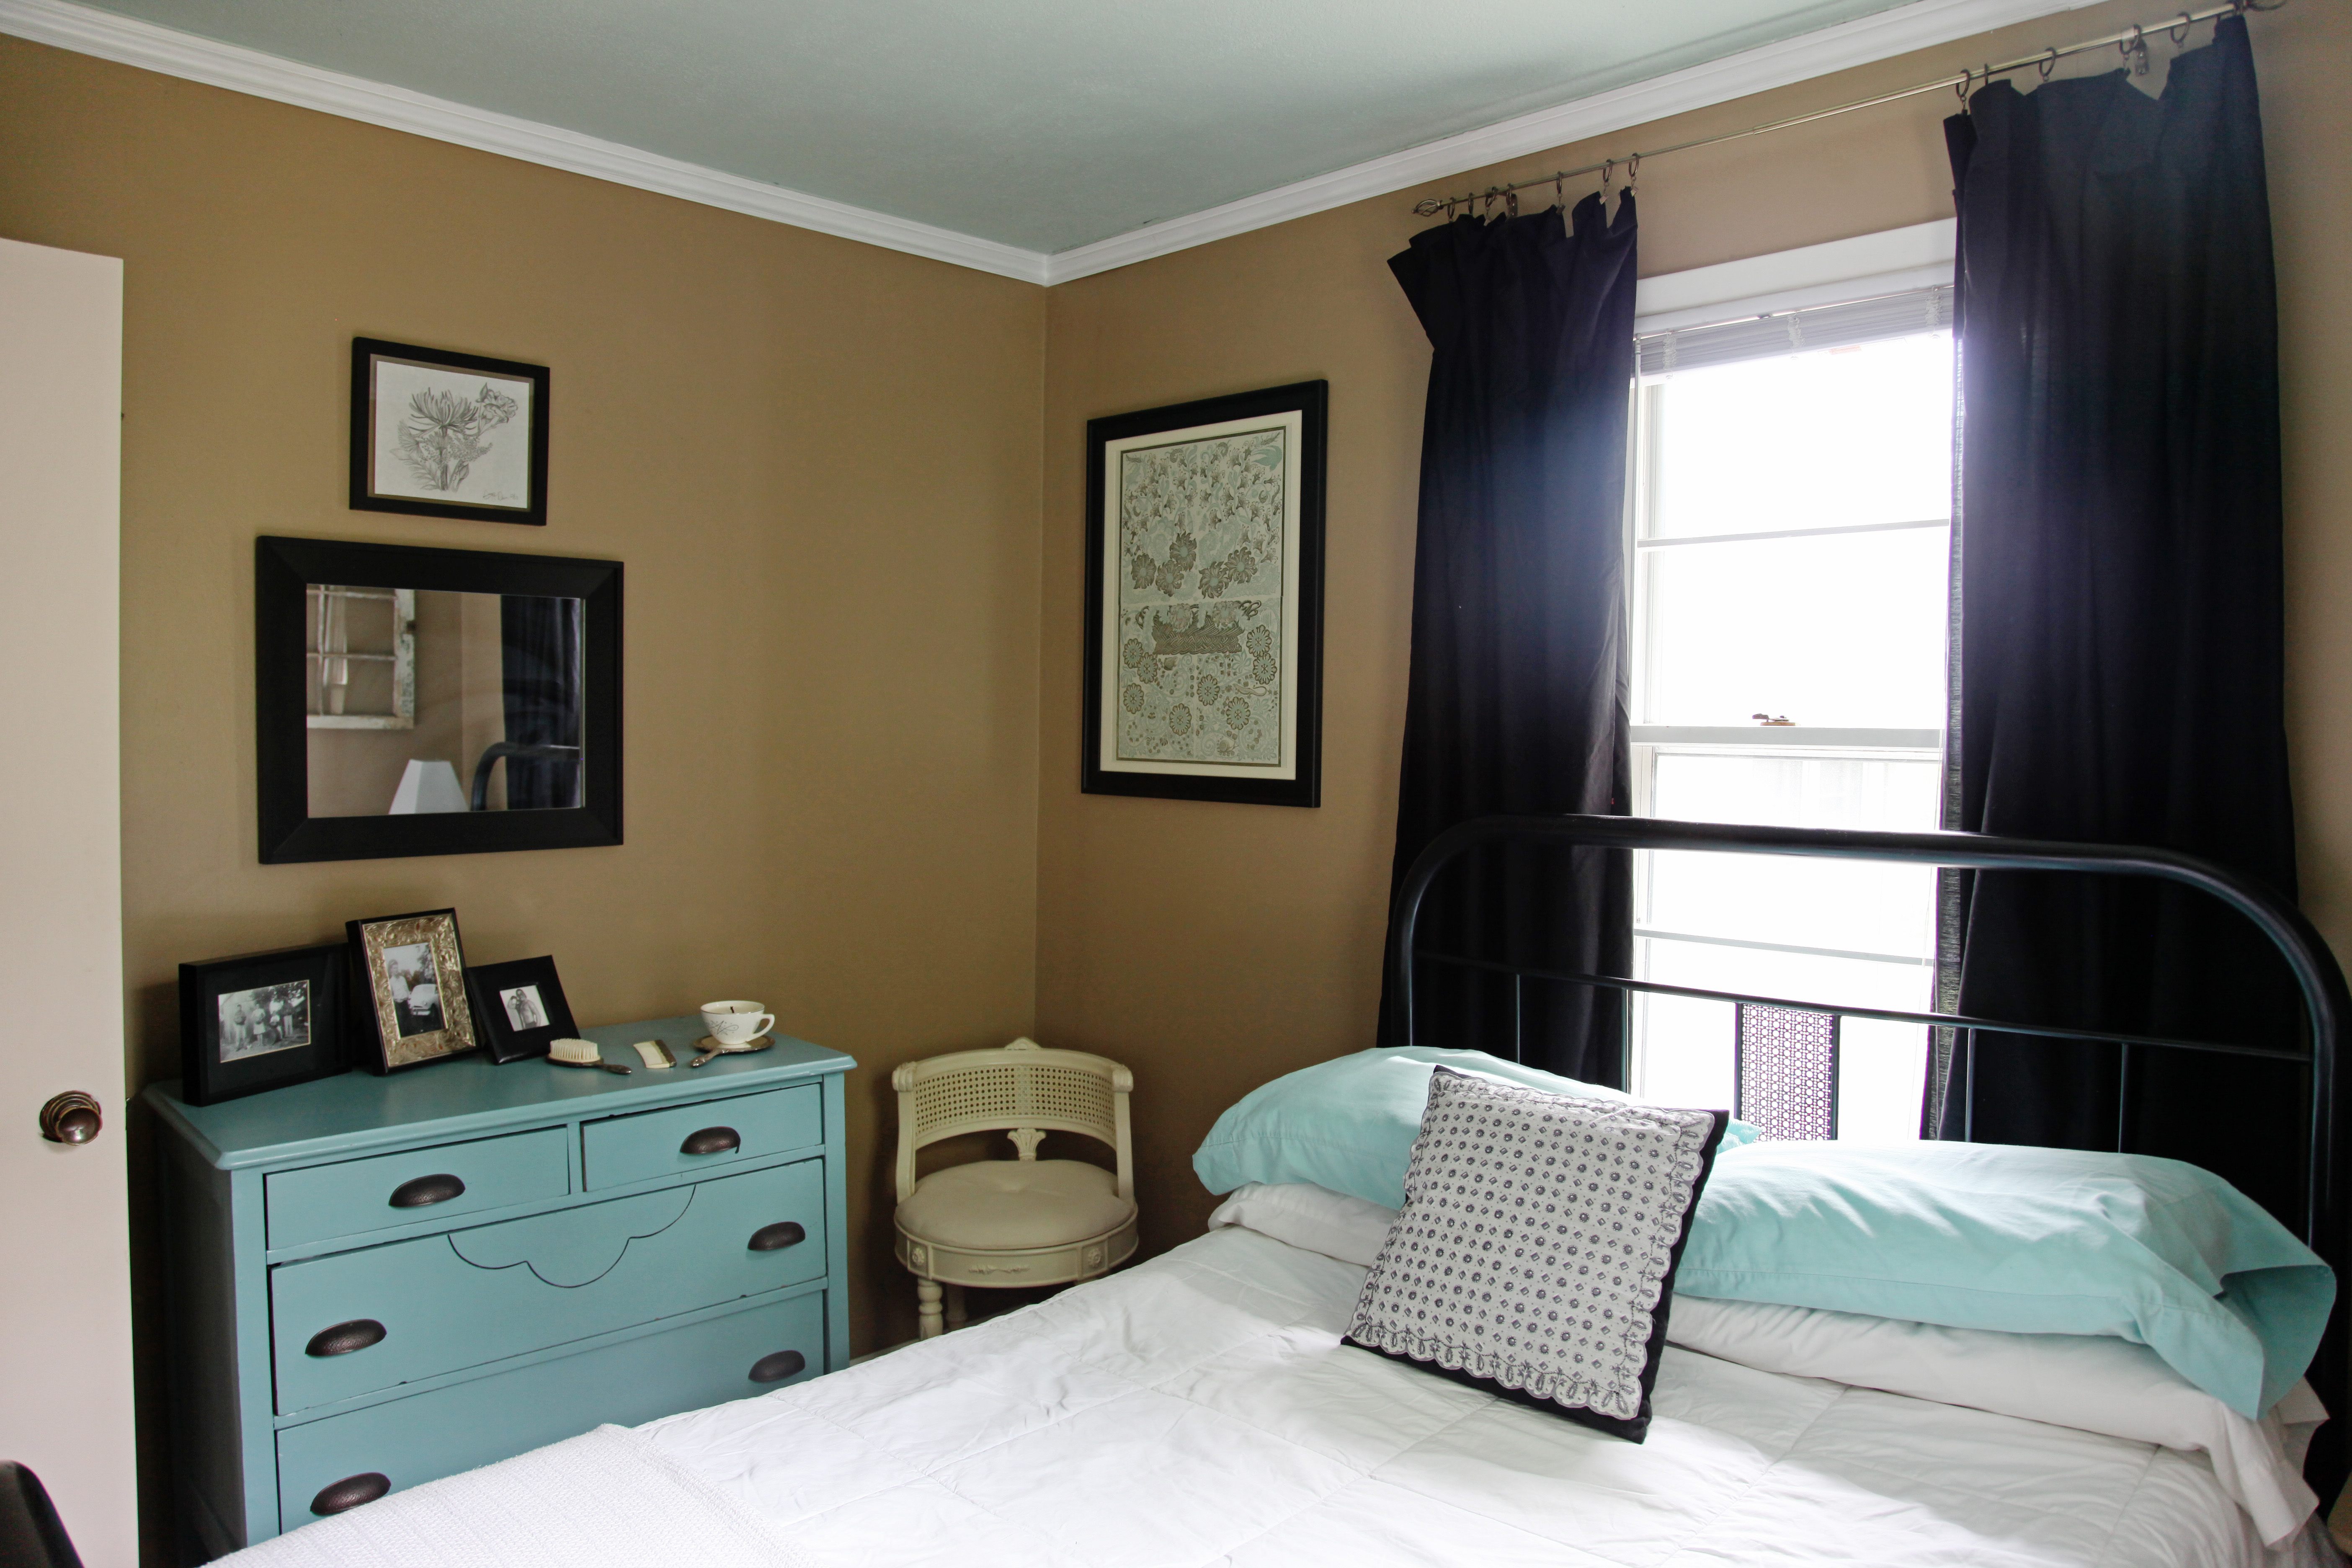 How to decorate a vintage guest room on a budget with diy